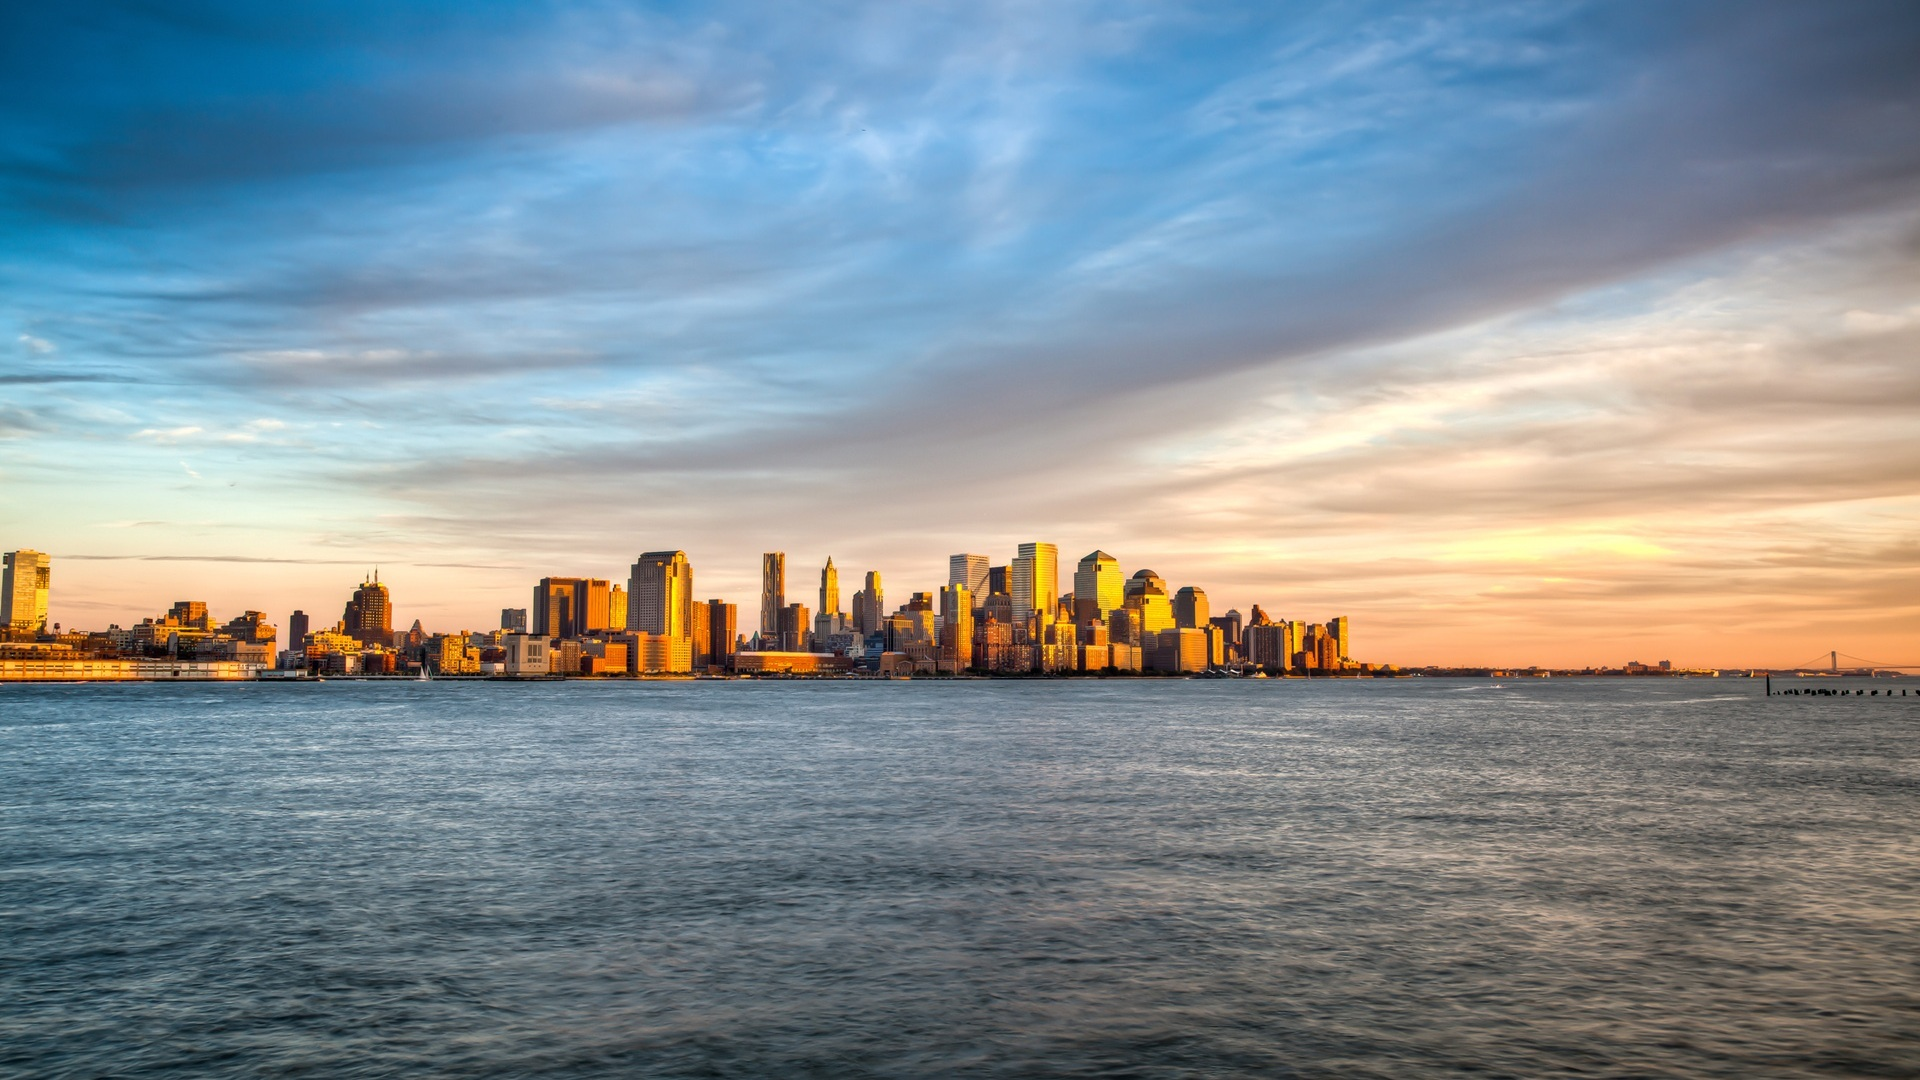 21882 download wallpaper Landscape, Cities, Sunset, Sea screensavers and pictures for free